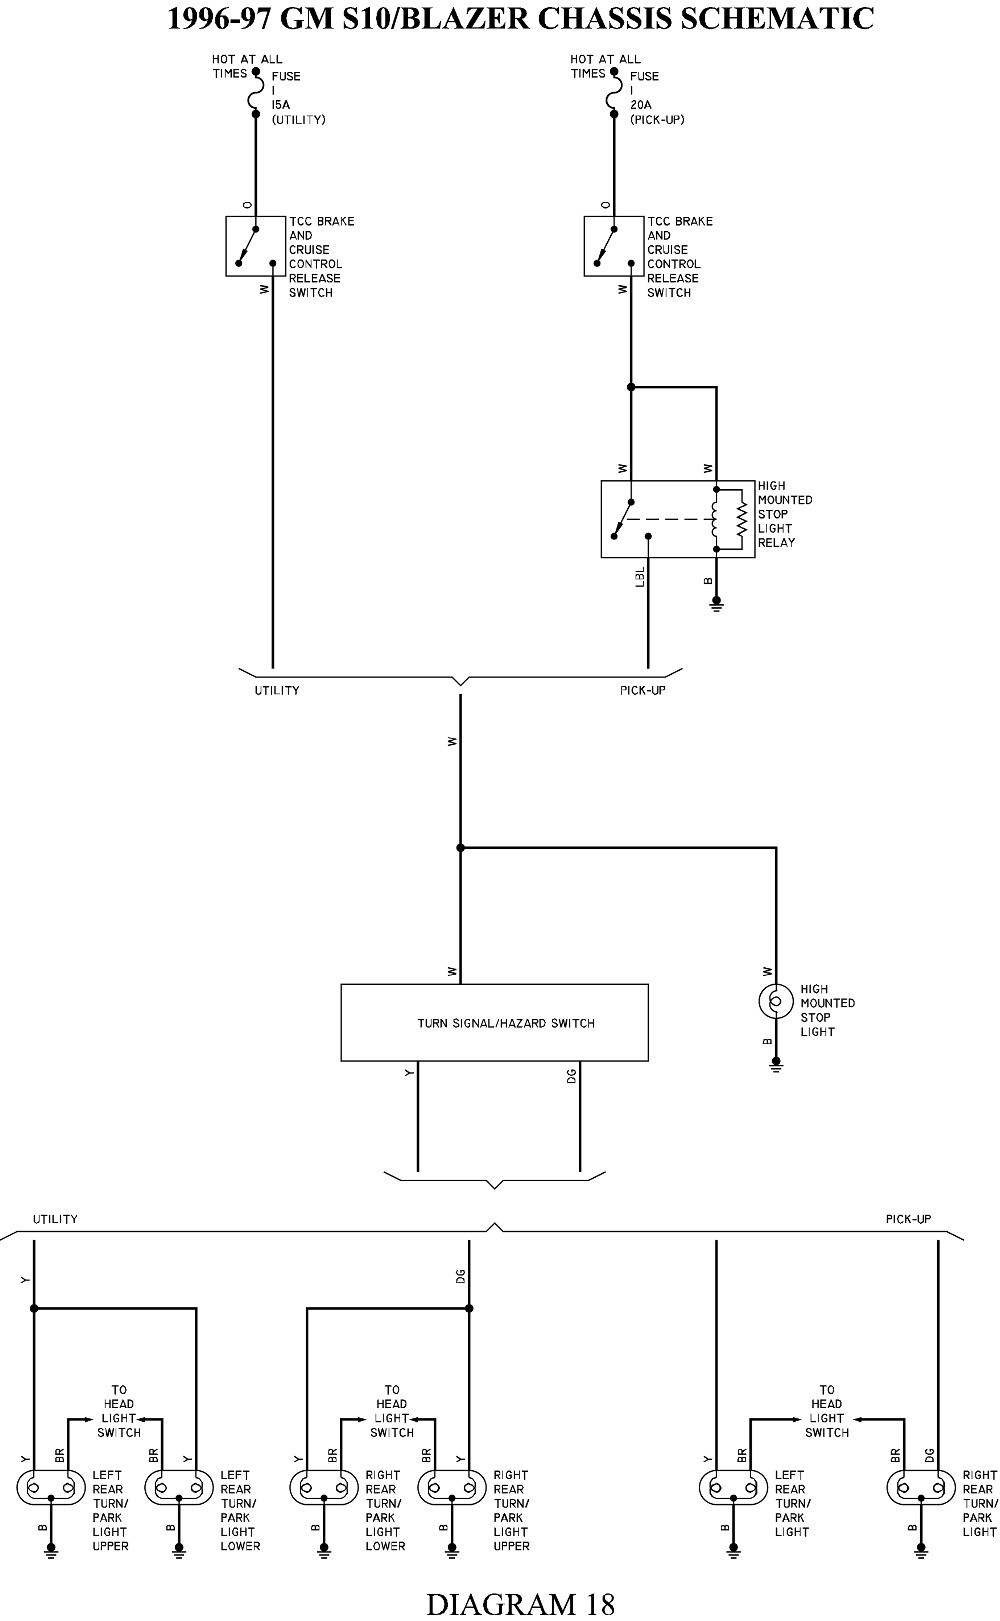 97 Blazer Ignition Switch Wiring Diagram from static-cdn.imageservice.cloud